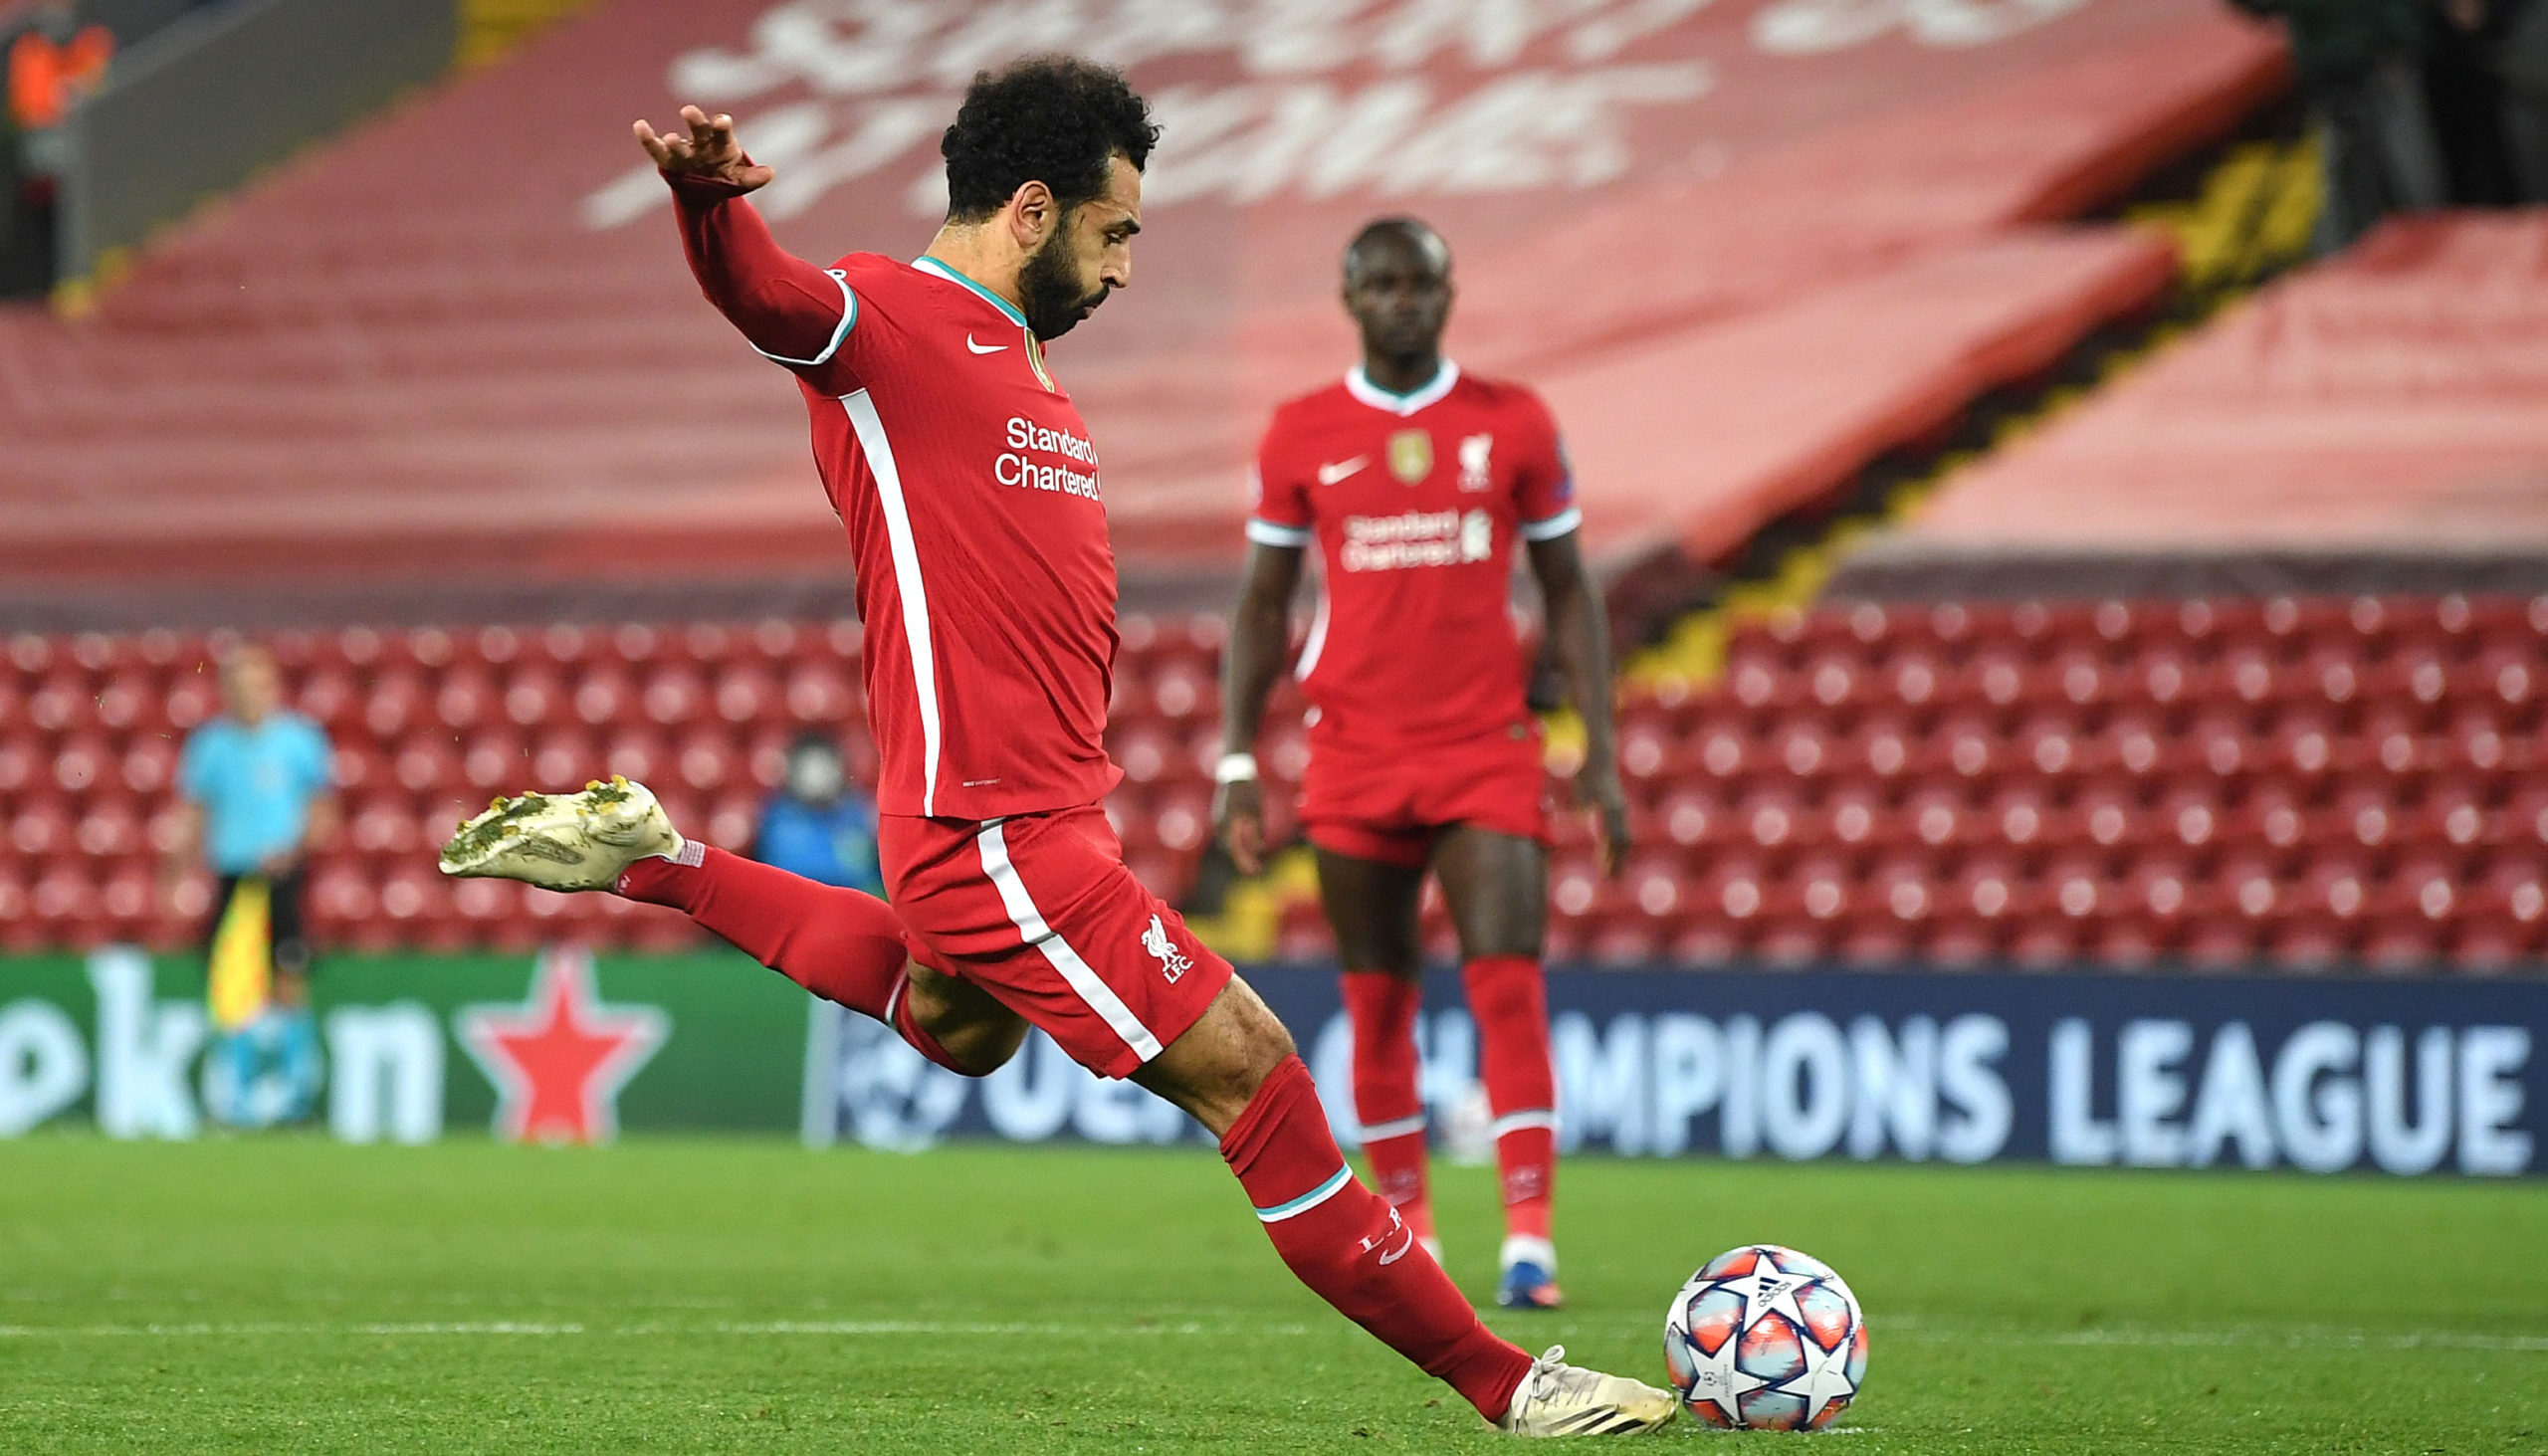 Premier League top scorer odds: Salah moves alongside Kane